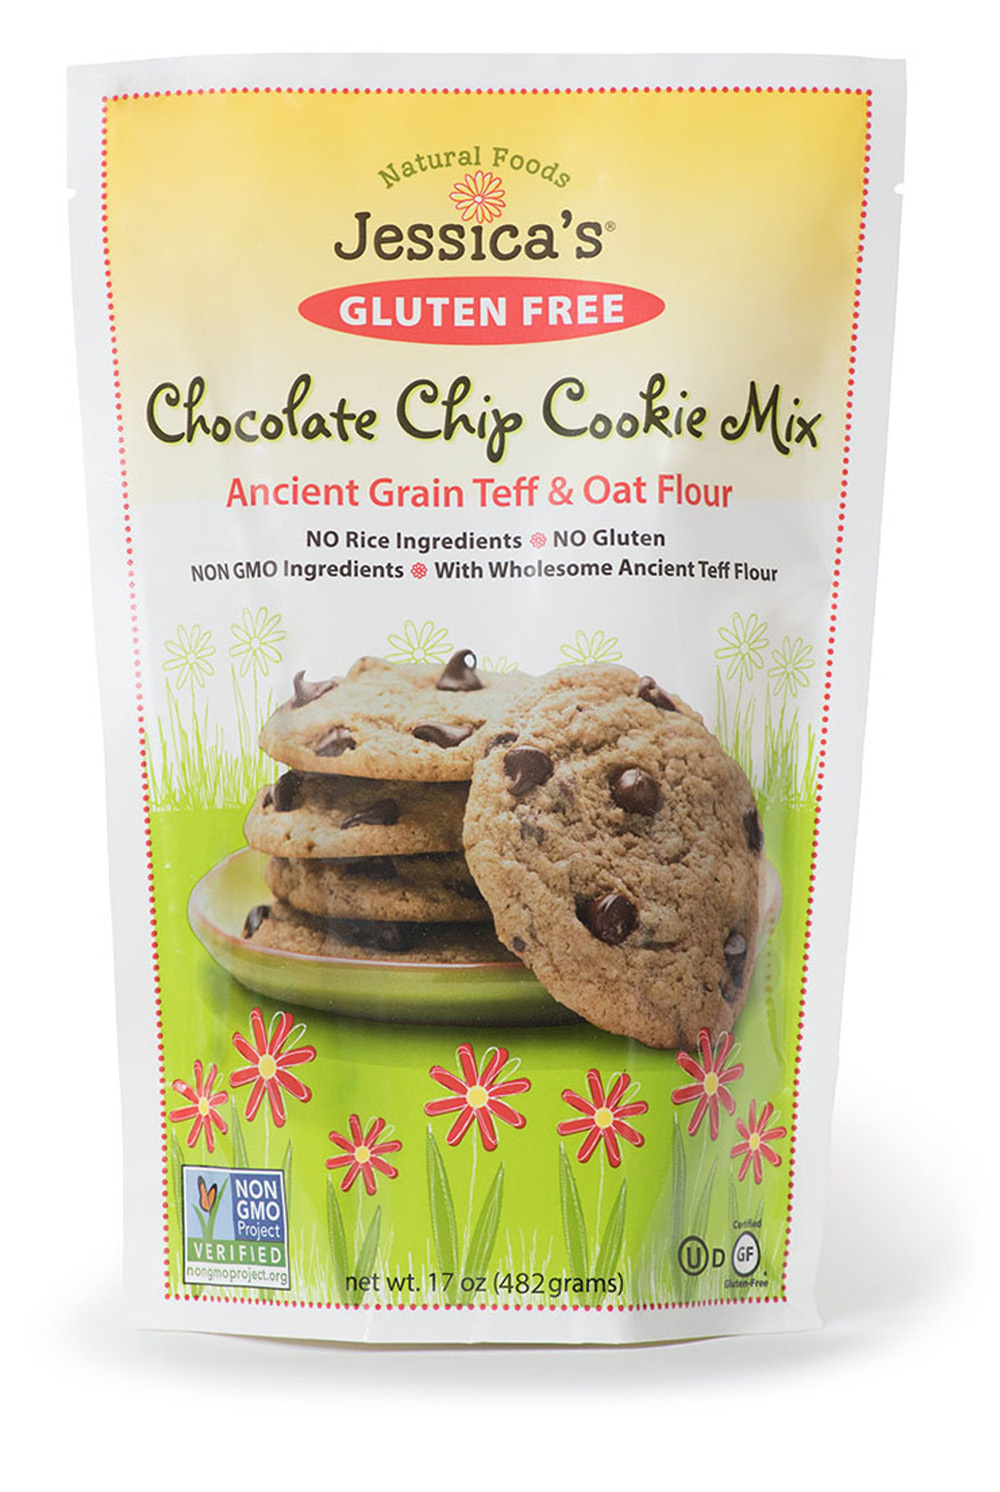 Gluten-Free Chocolate Chip Cookie Mix